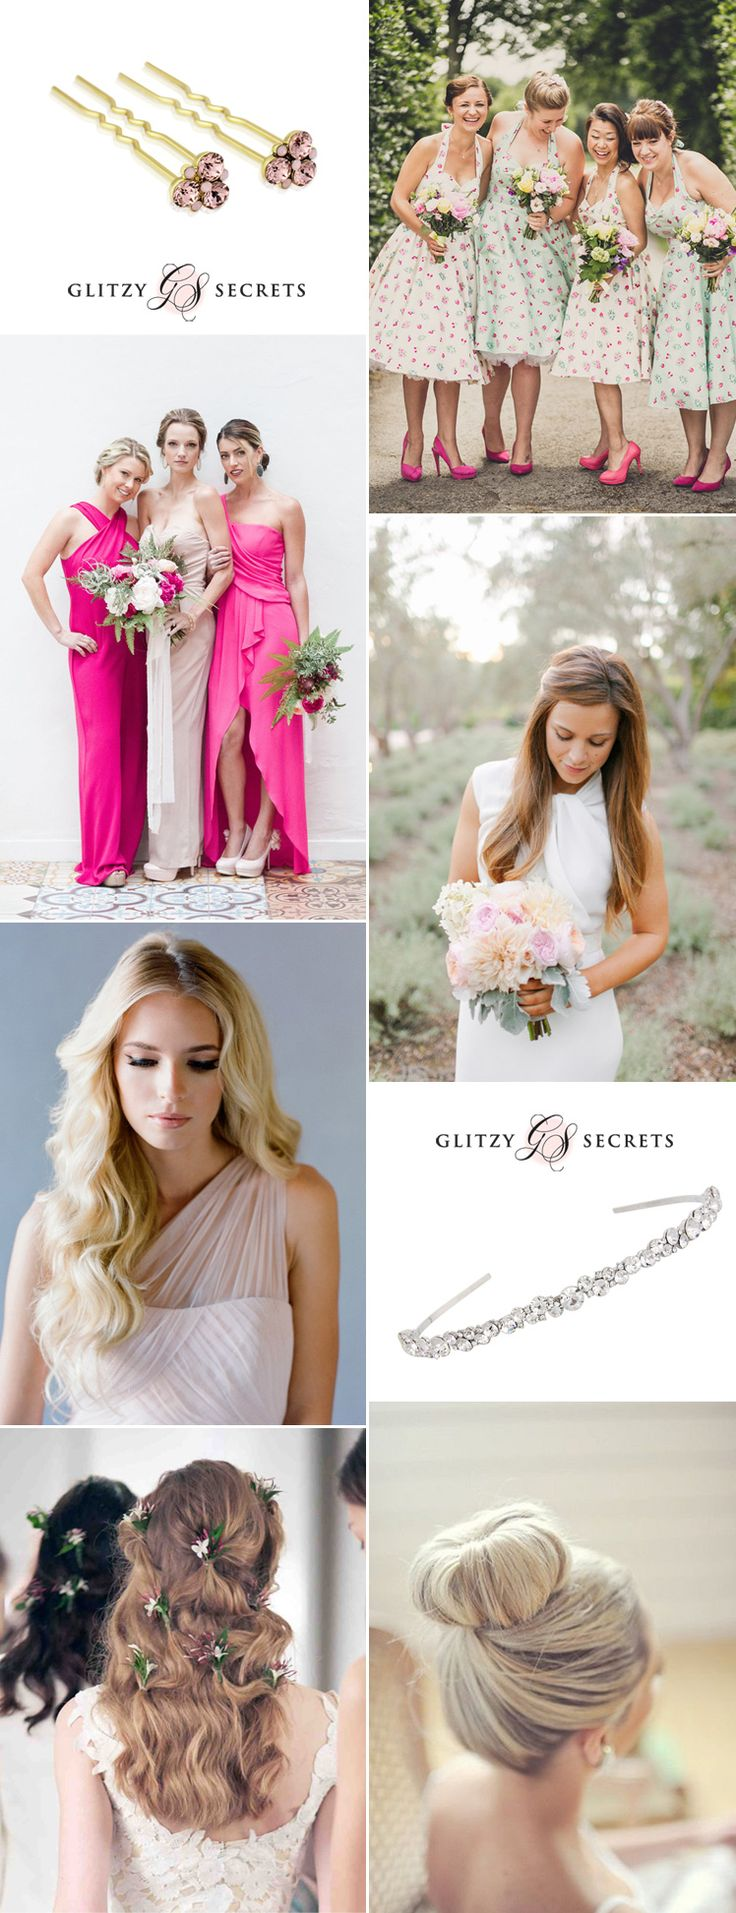 229 best beautiful bridesmaids images on pinterest wedding beautiful hairstyles for your bridesmaids on gs inspiration glitzy secrets ombrellifo Choice Image